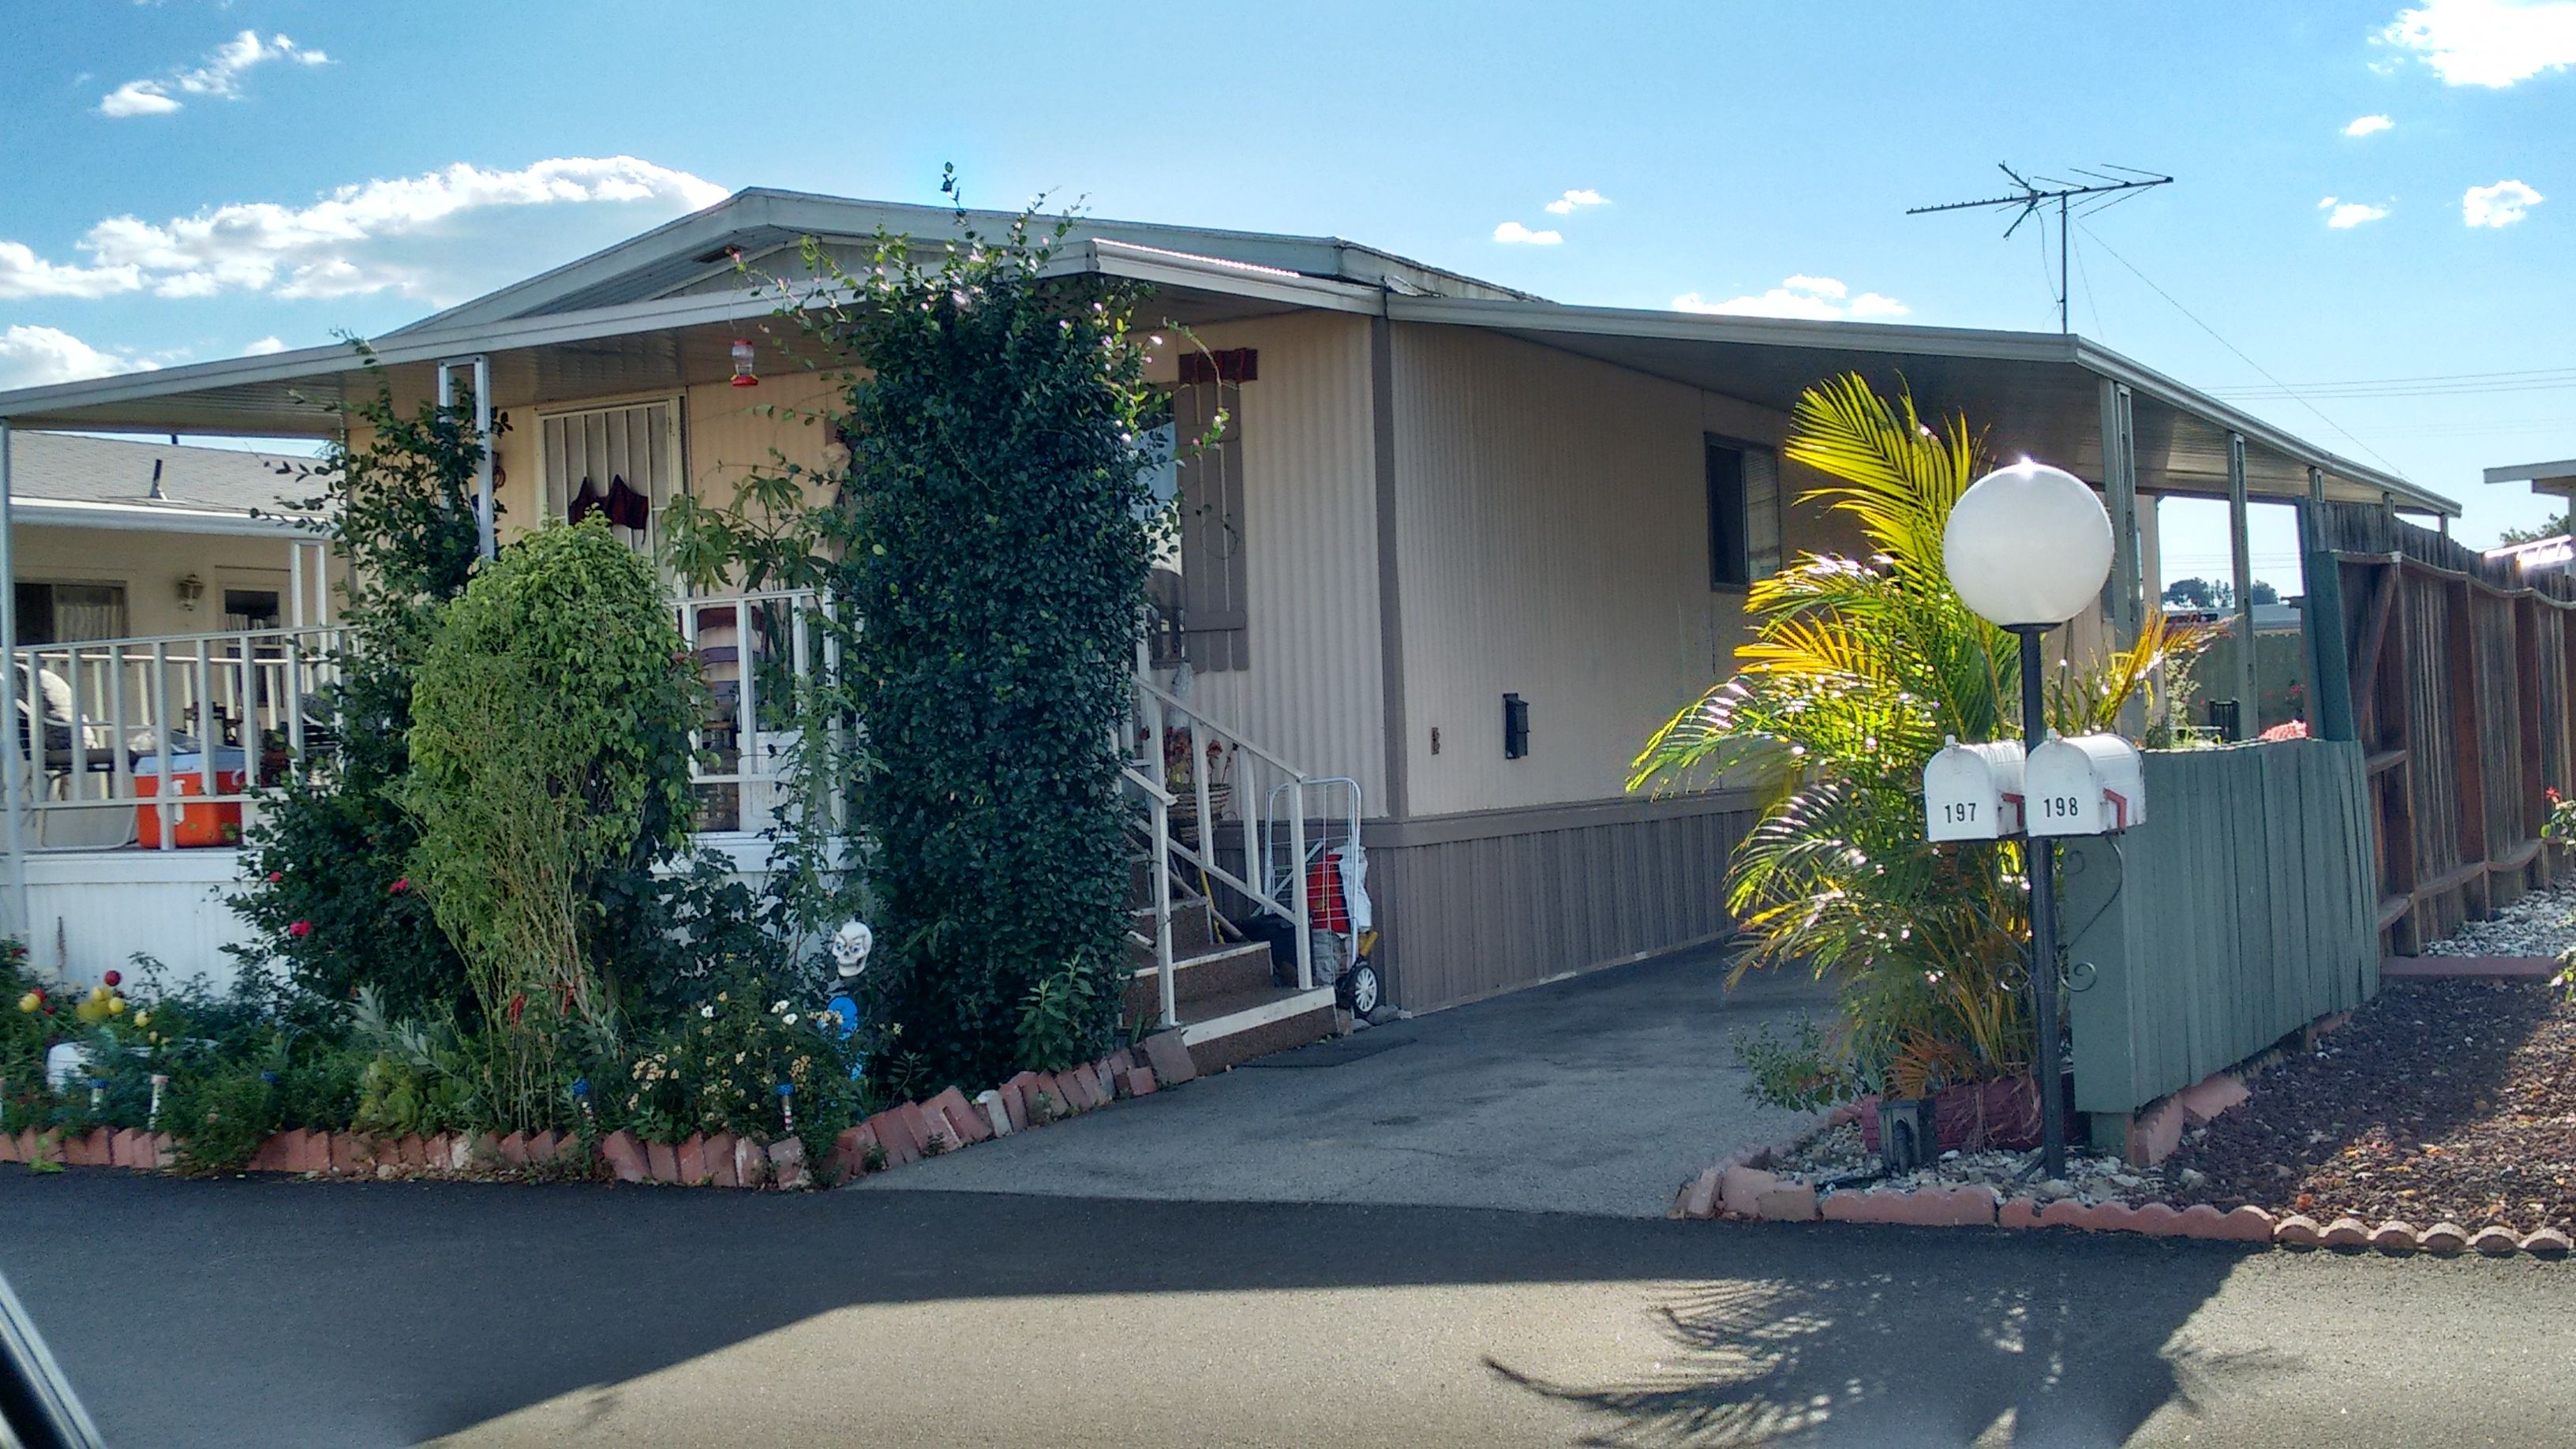 Imperial Manufactured Home For Sale In Chatsworth Ca Mobile Homes For Sale Manufactured Home Ideal Home